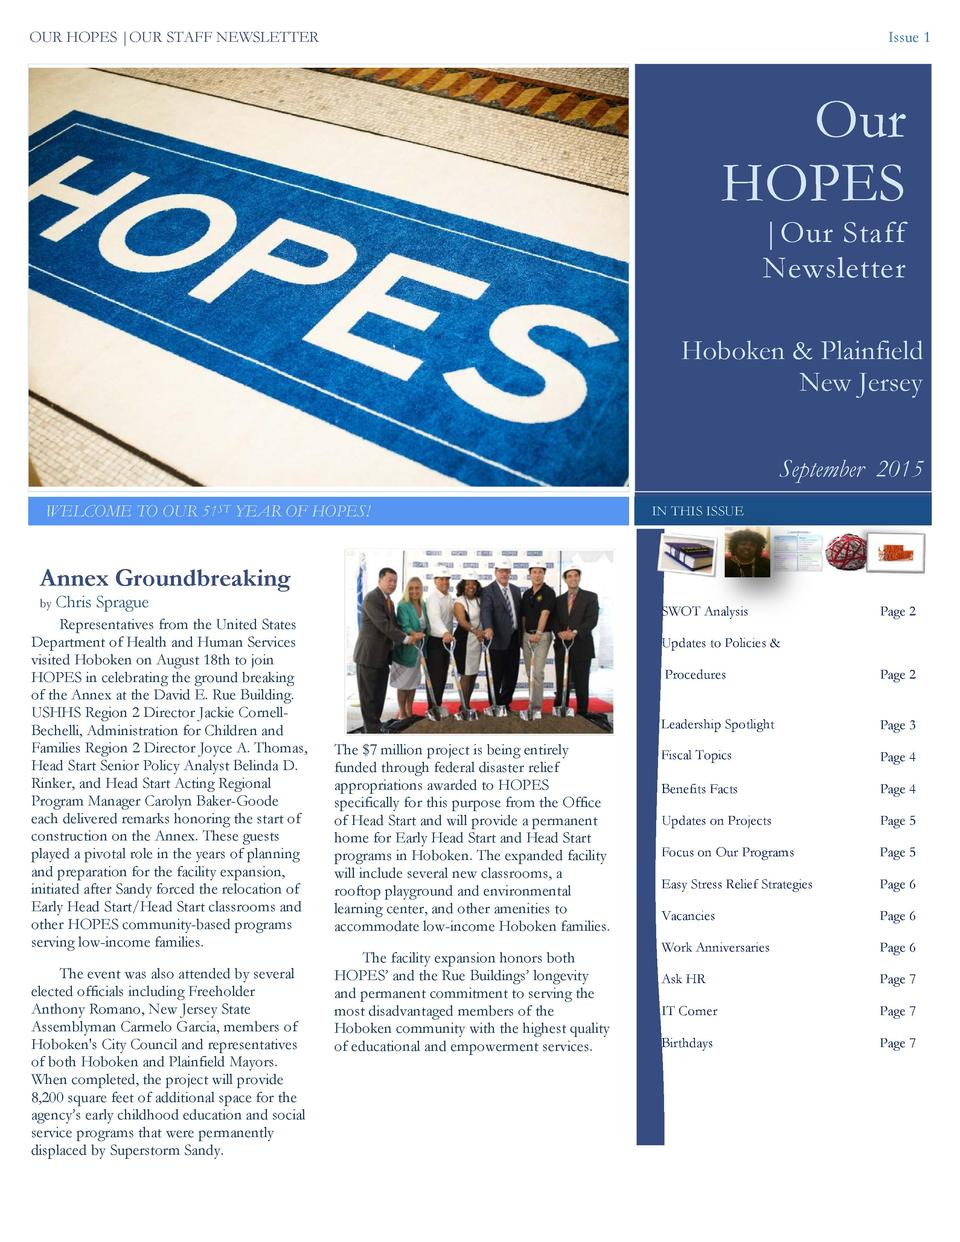 OUR HOPES  OUR STAFF NEWSLETTER  Issue 1  Our HOPES  Our Staff Newsletter  Hoboken   Plainfield New Jersey September 2015 ...